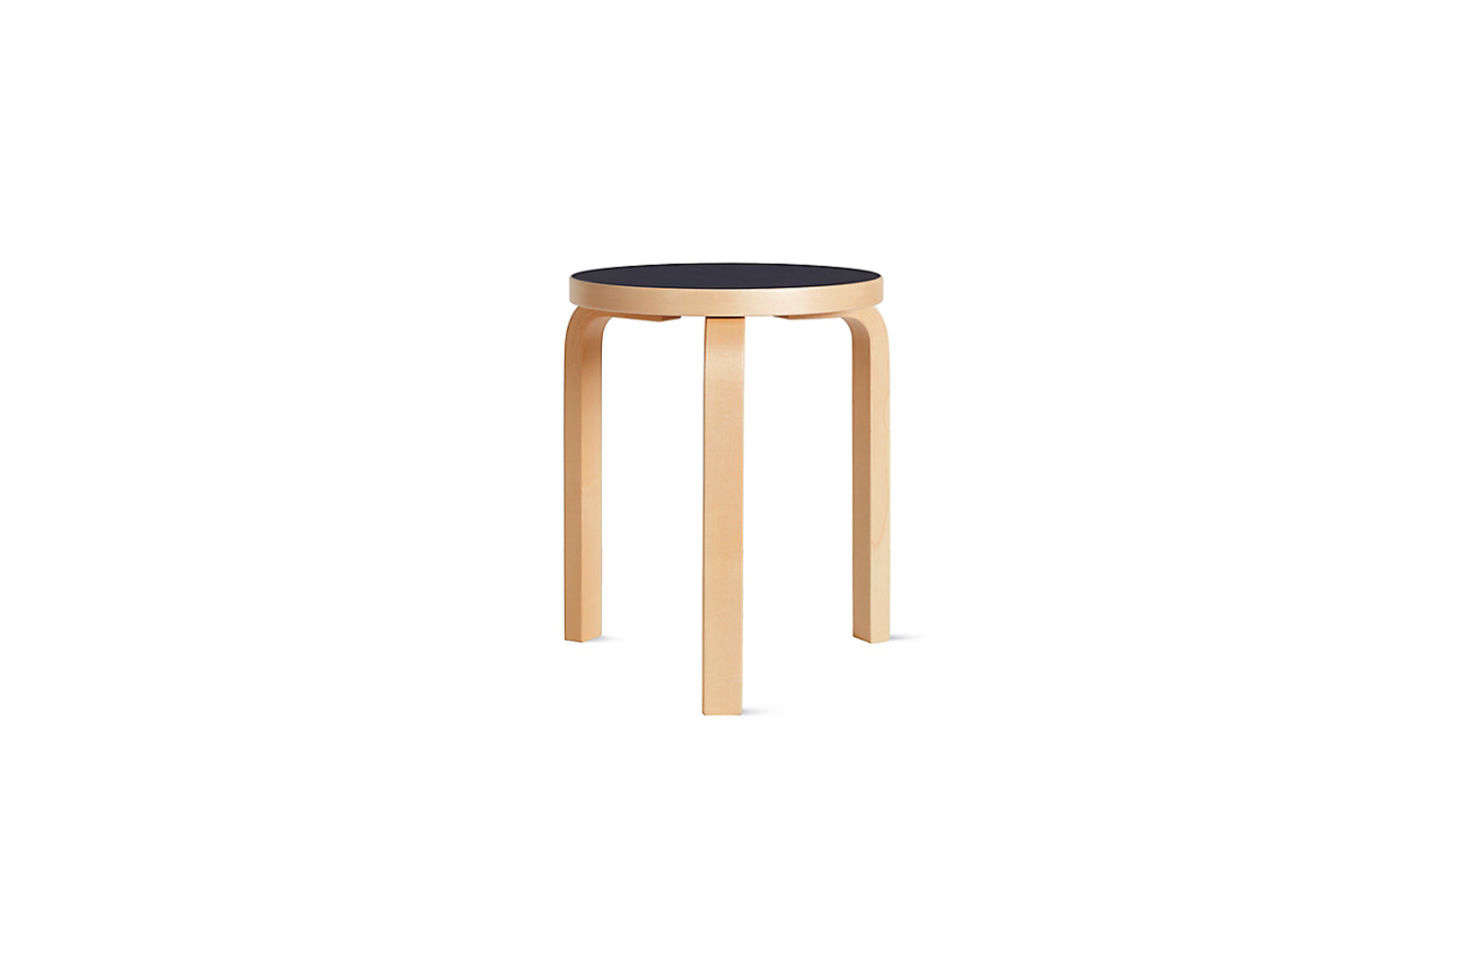 The Alvar Aalto Stool 60 with a linoleum black top is $